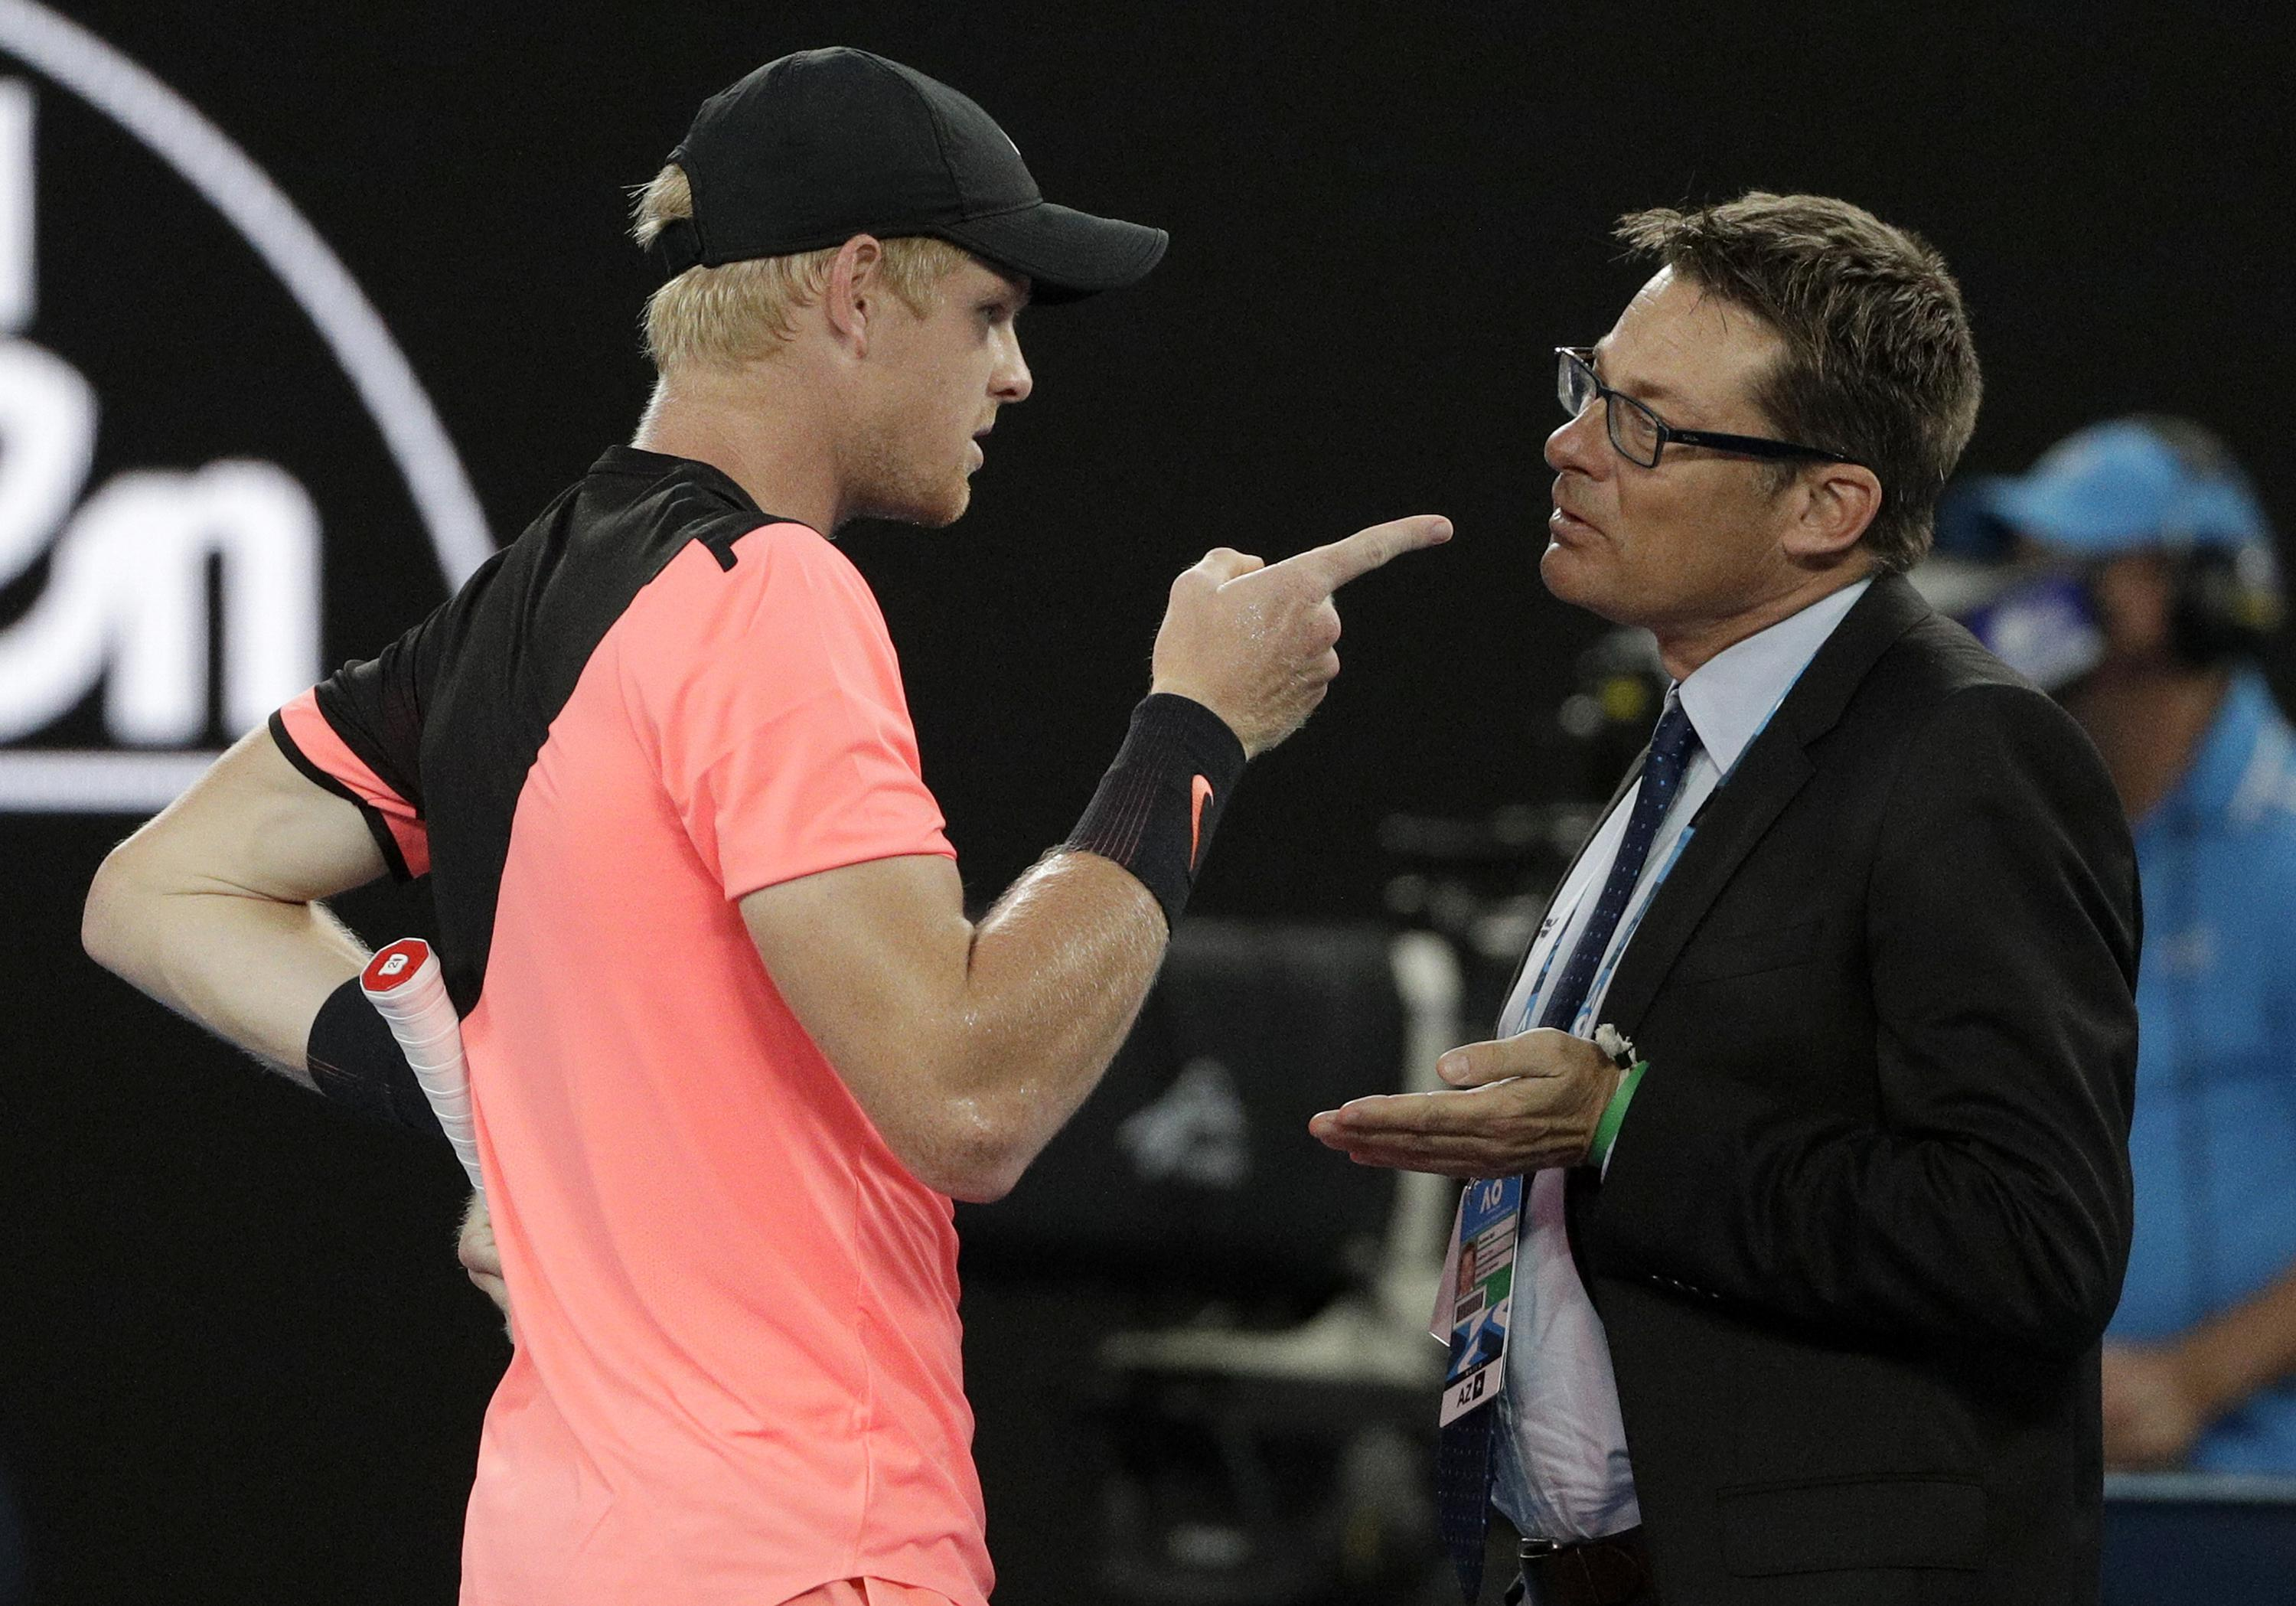 The British star made his feelings known after calling for the match referee to intervene